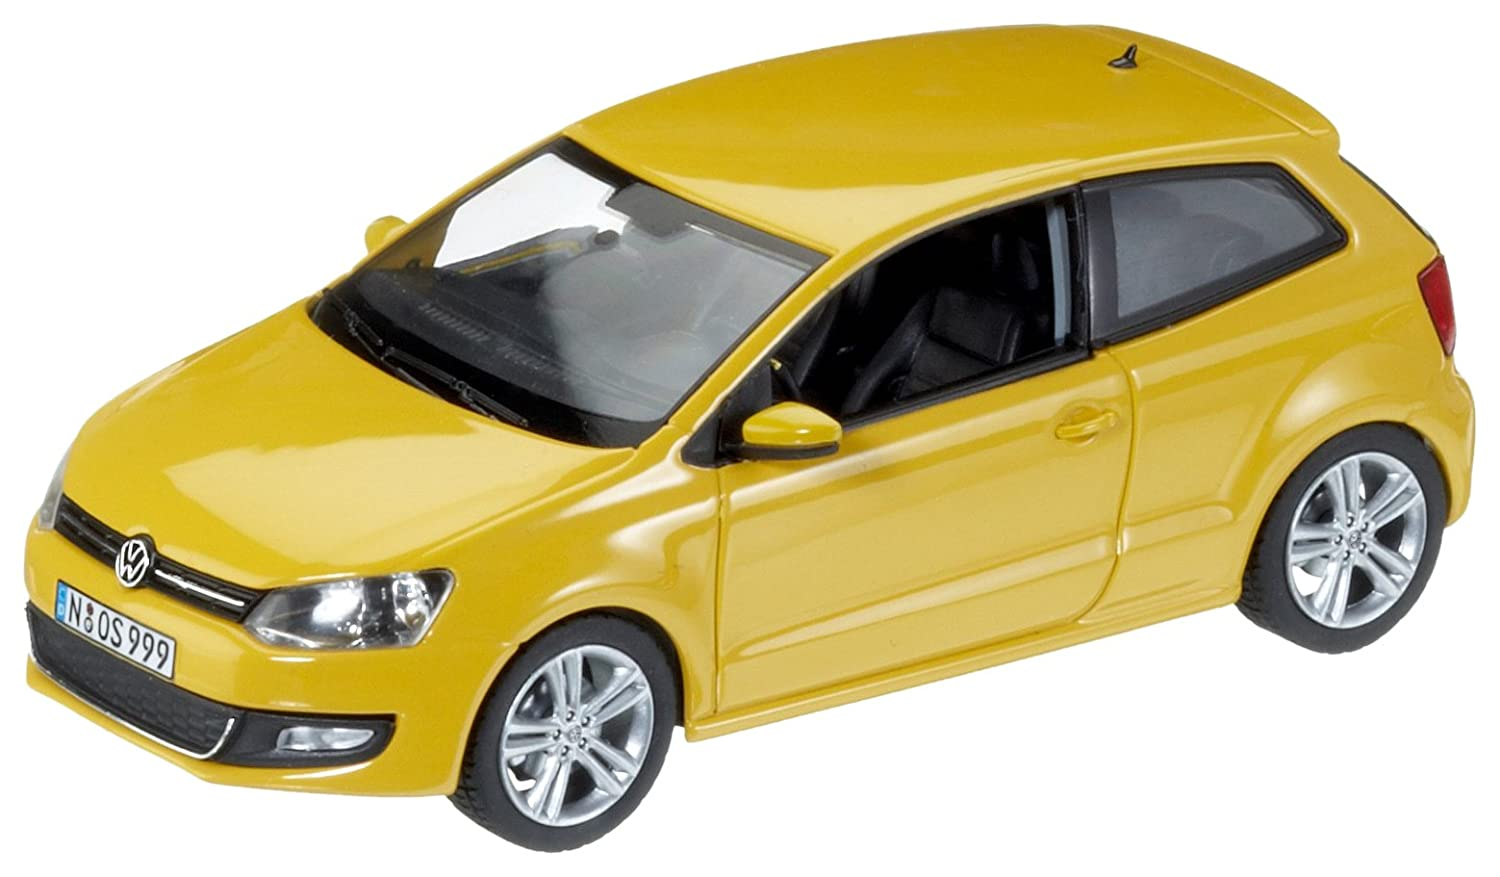 Schuco 450735100 Classic 1:43 - VW Polo Sabana, Amarillo: Amazon ...